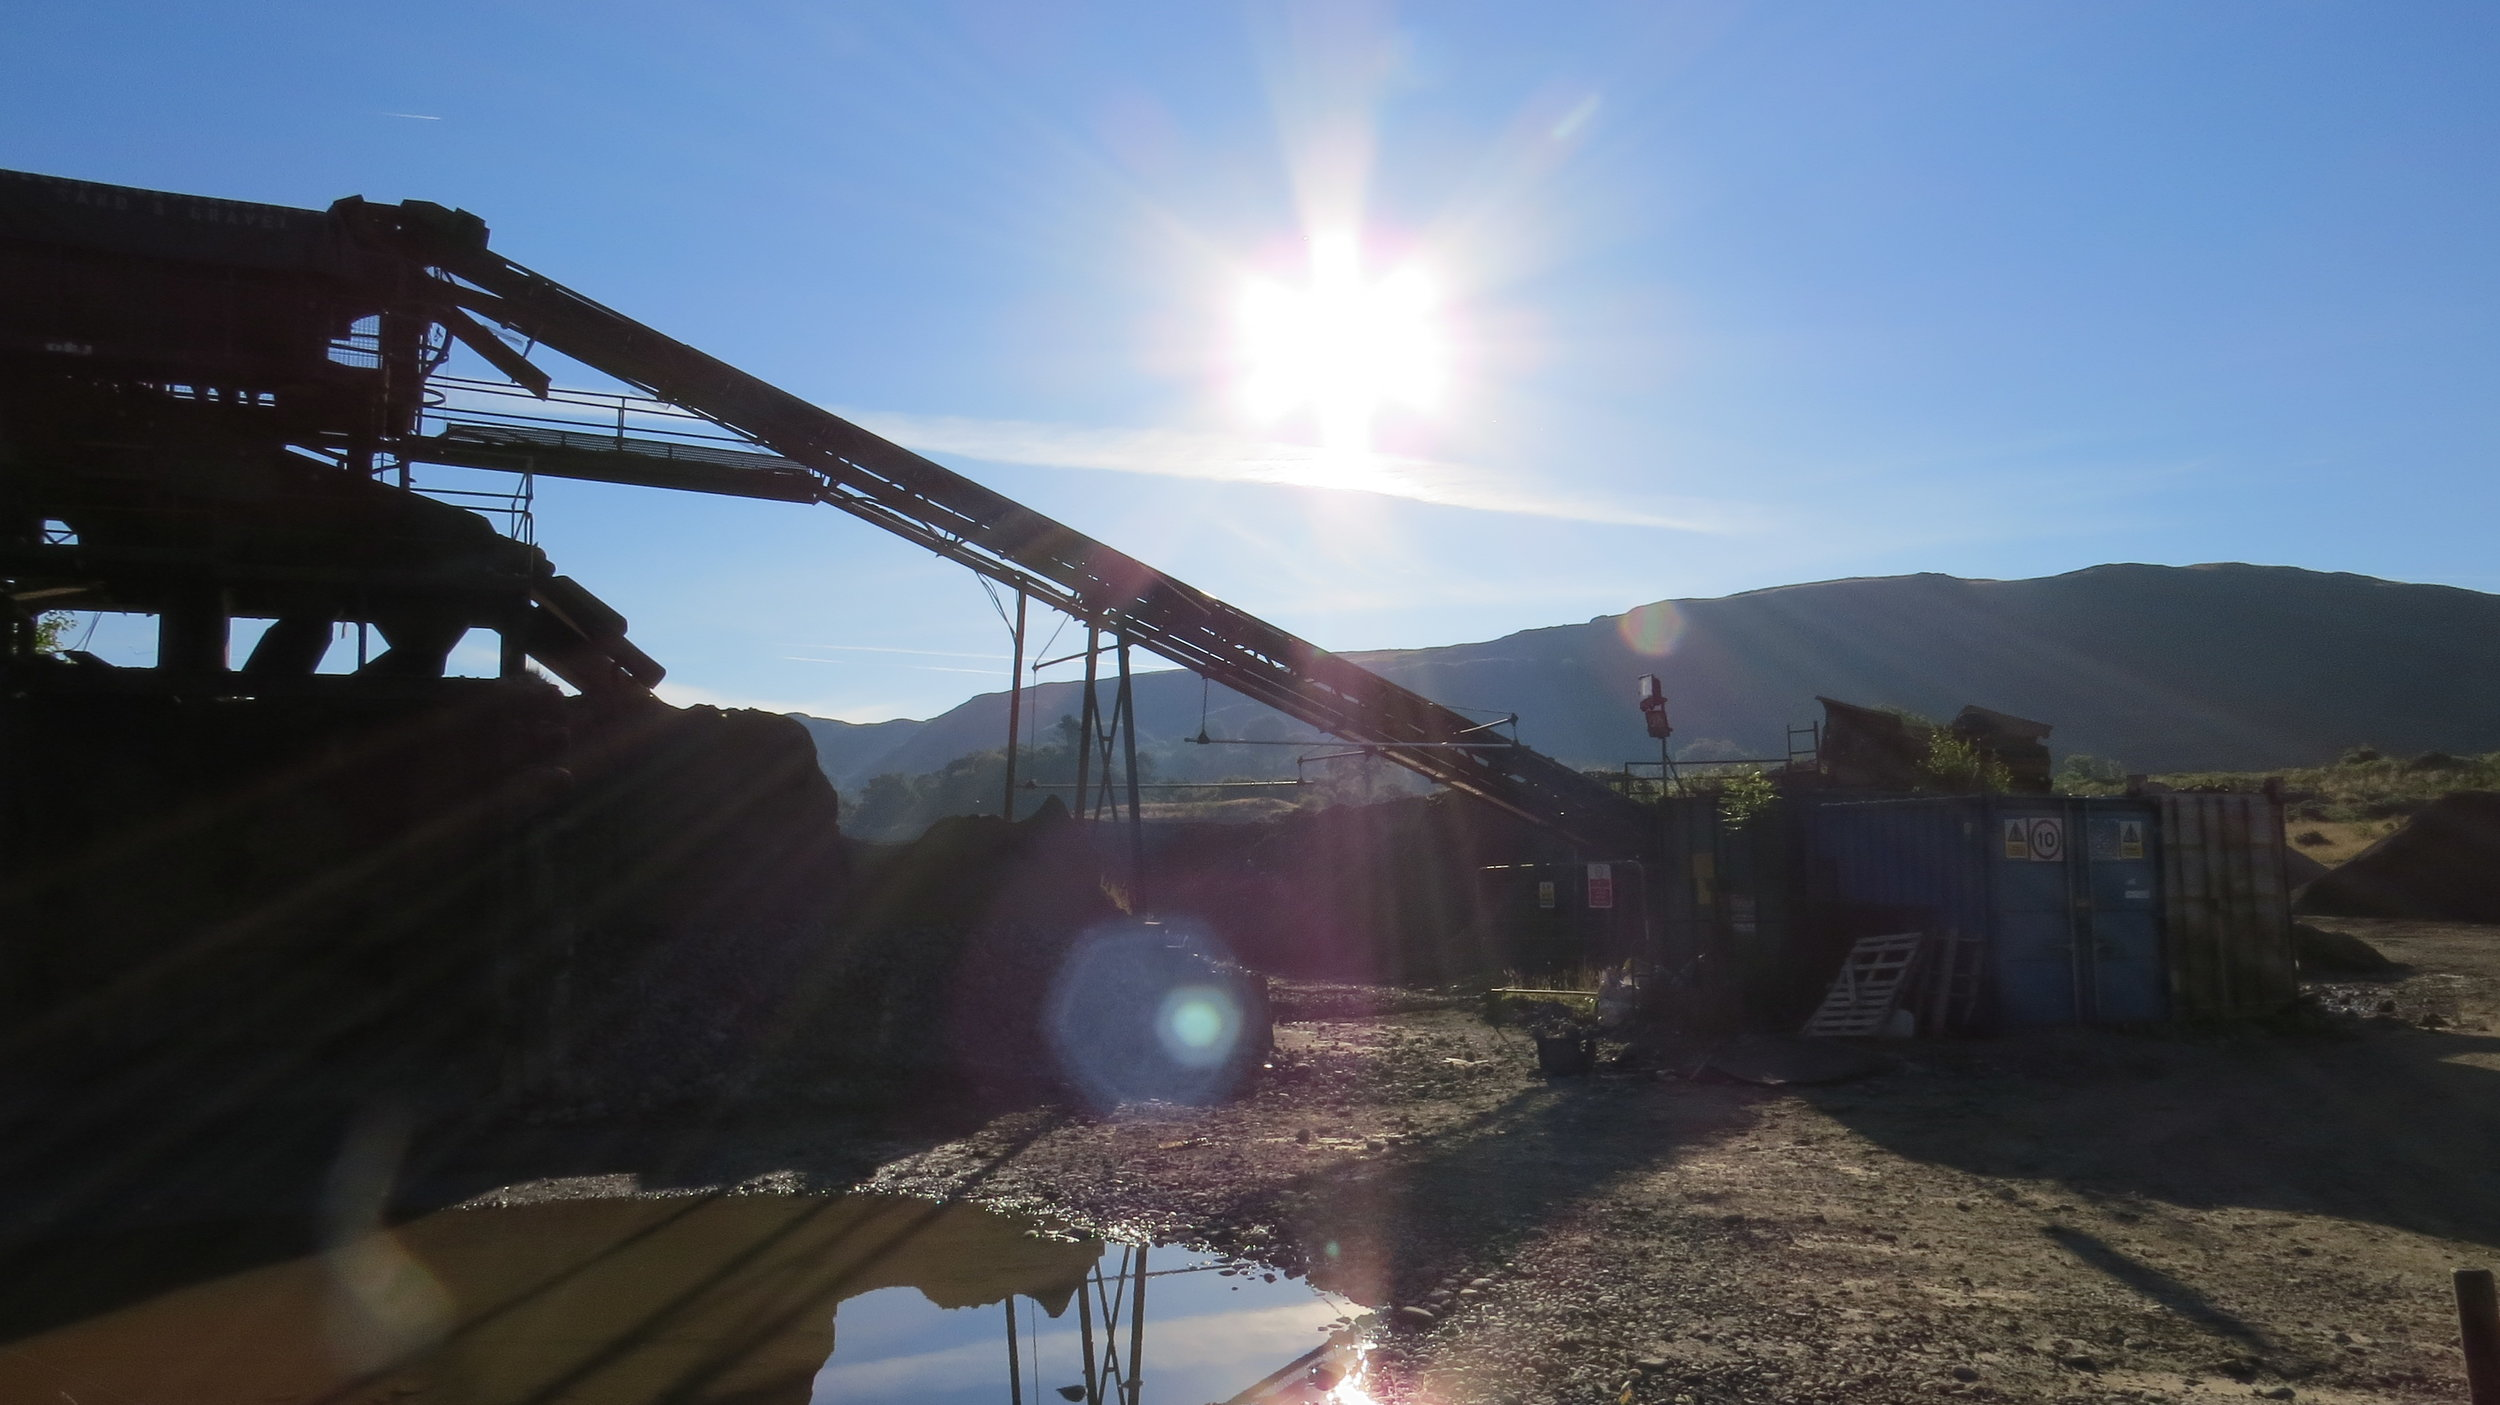 Morning Sun over Worksite